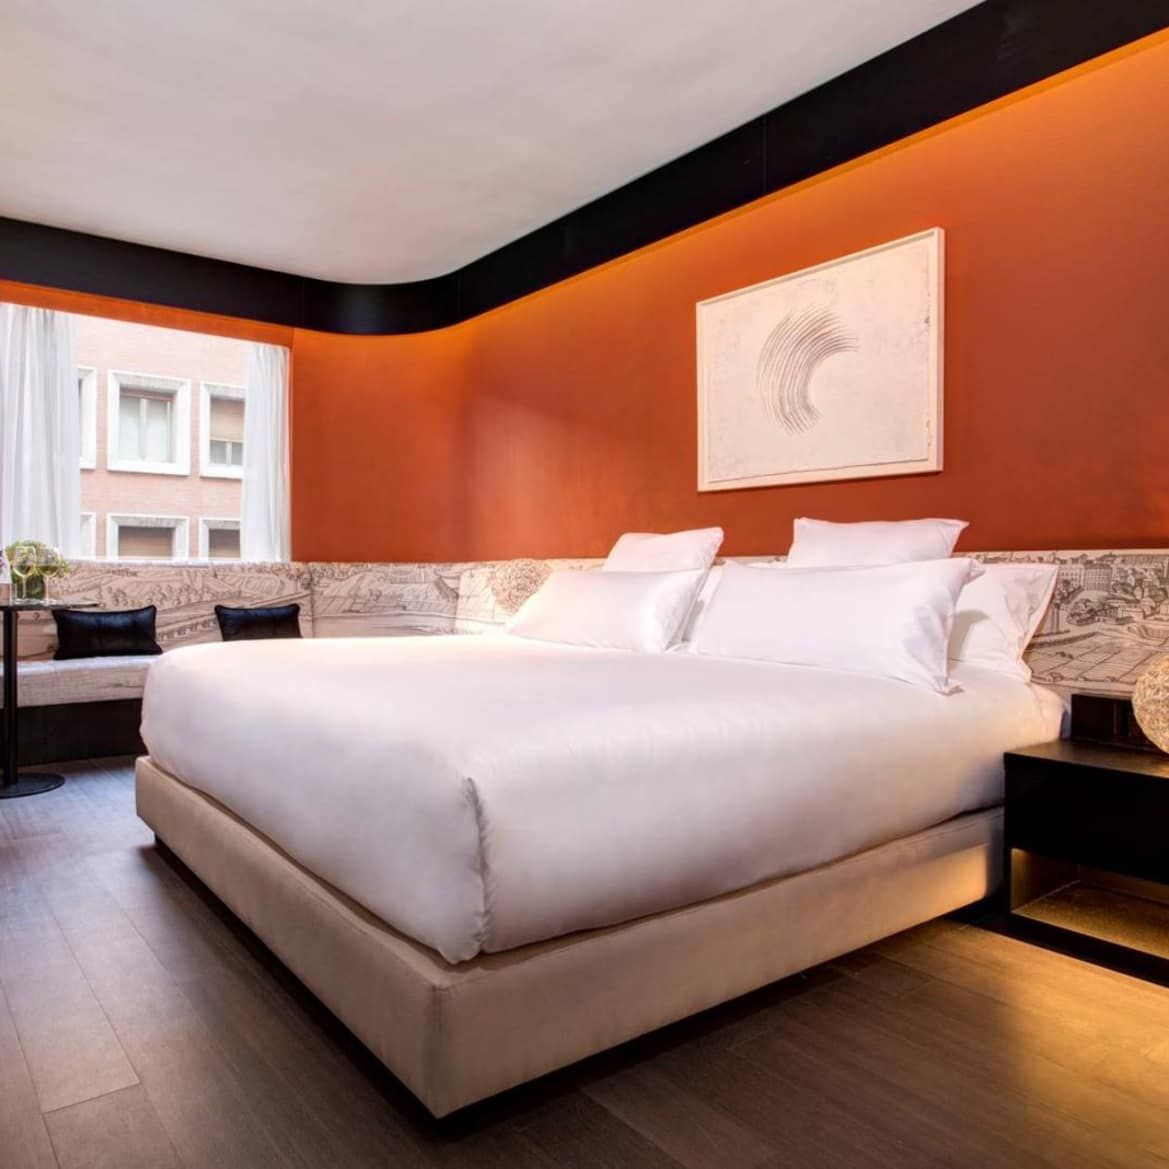 Deluxe Room - The Pavilions Madrid